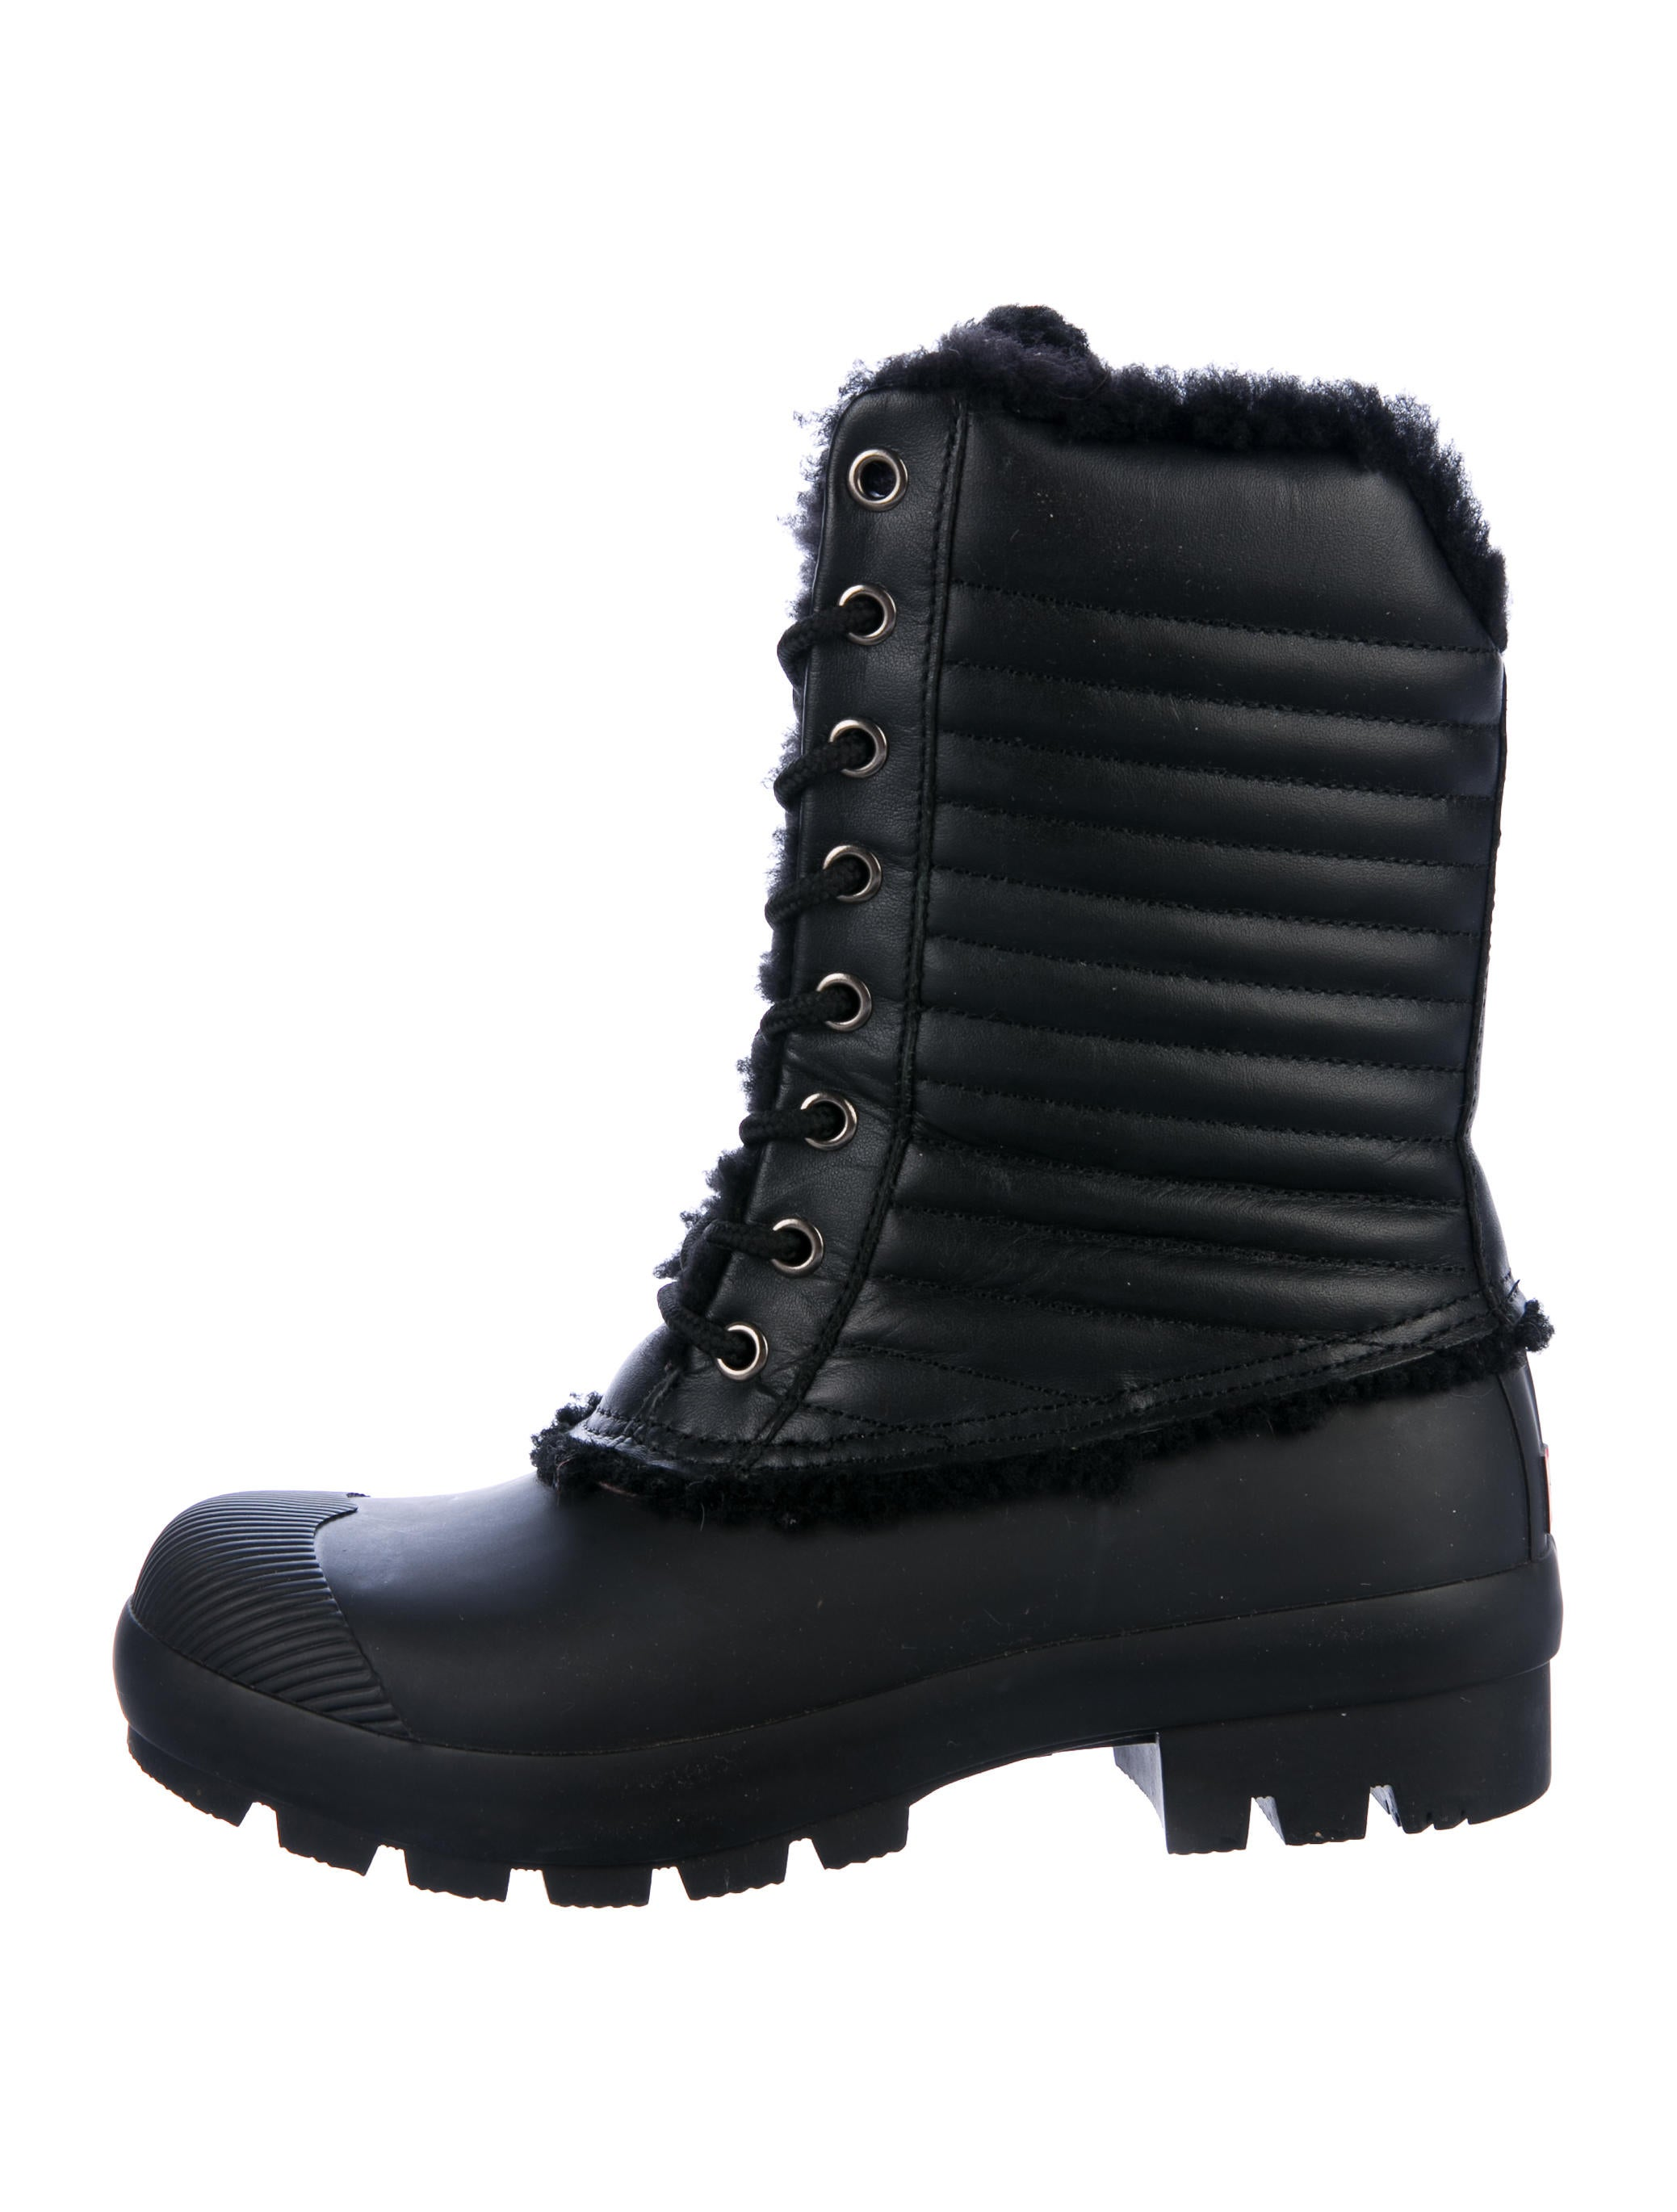 fashionable buy cheap shop for Hunter Leather-Trimmed Rain Boots shopping online free shipping buy cheap view MrK2A9gj52